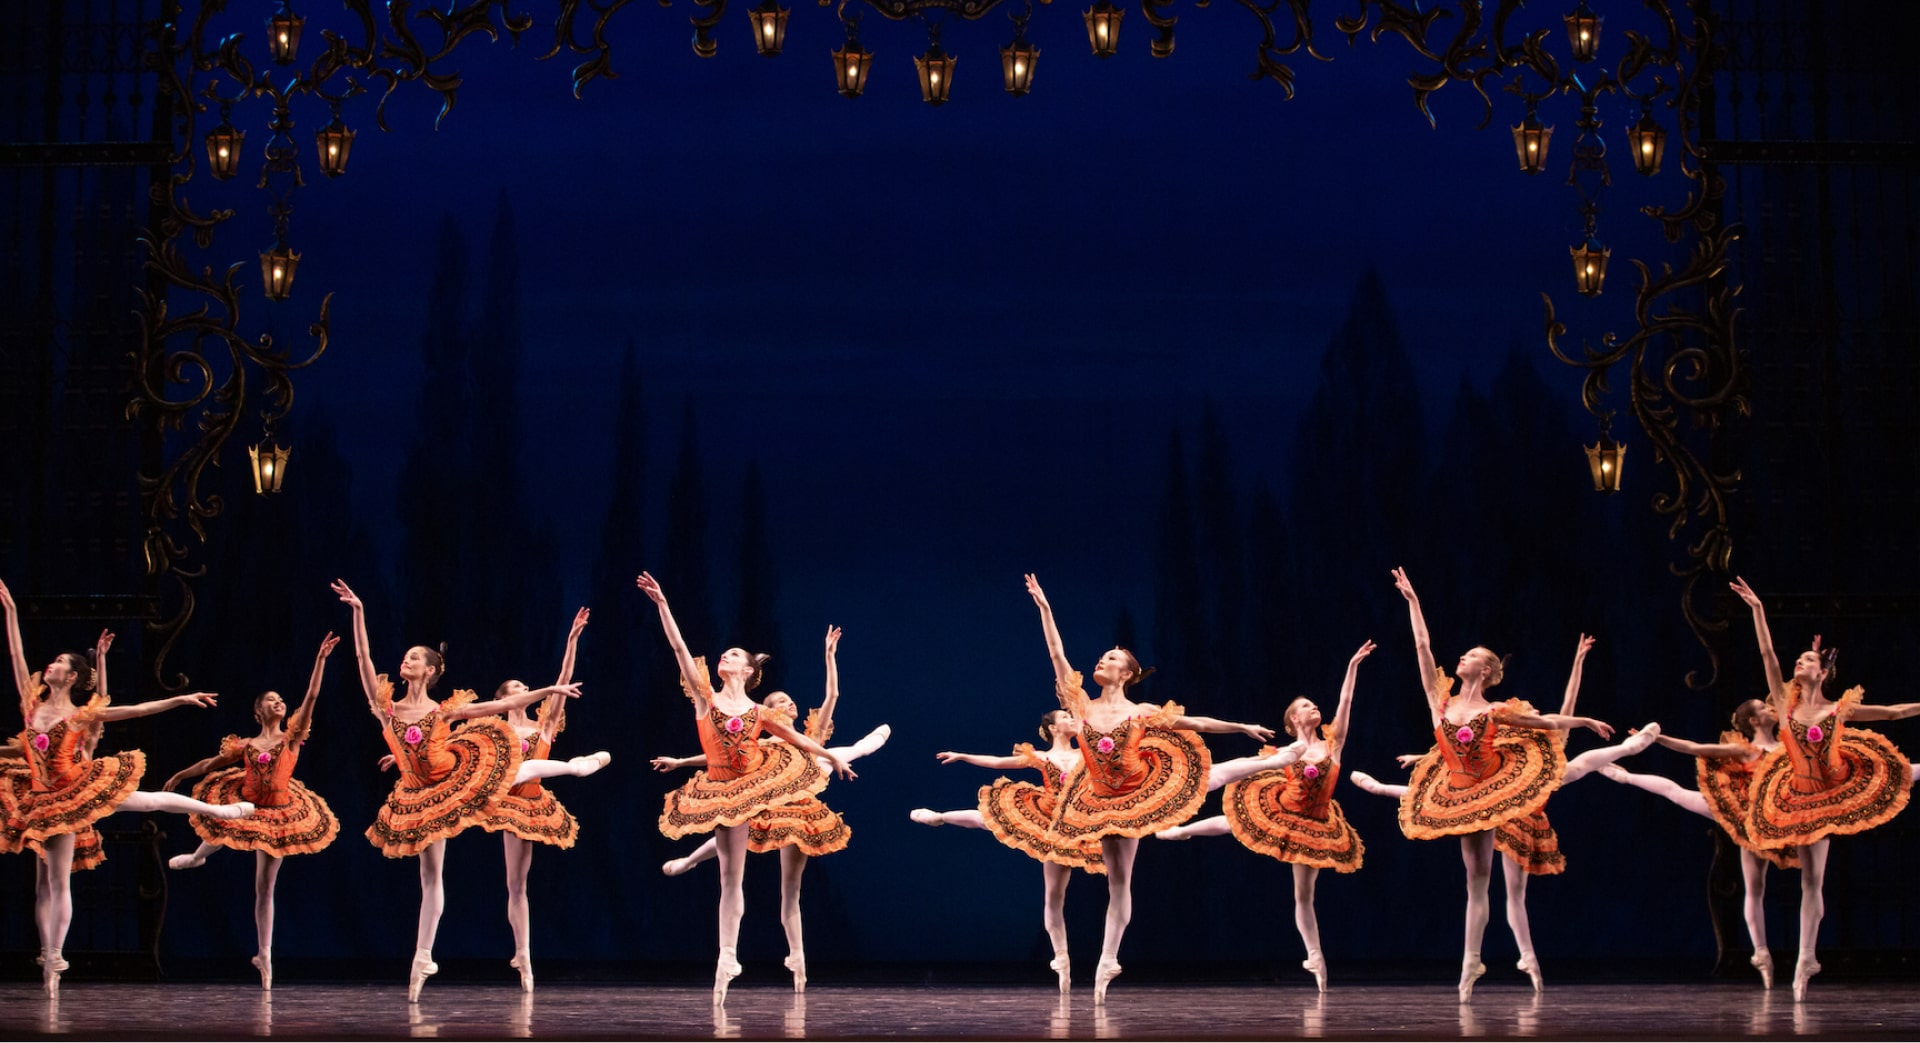 Chorus of ballerinas in bright orange tutus dance on point under lanterned archway and night sky.